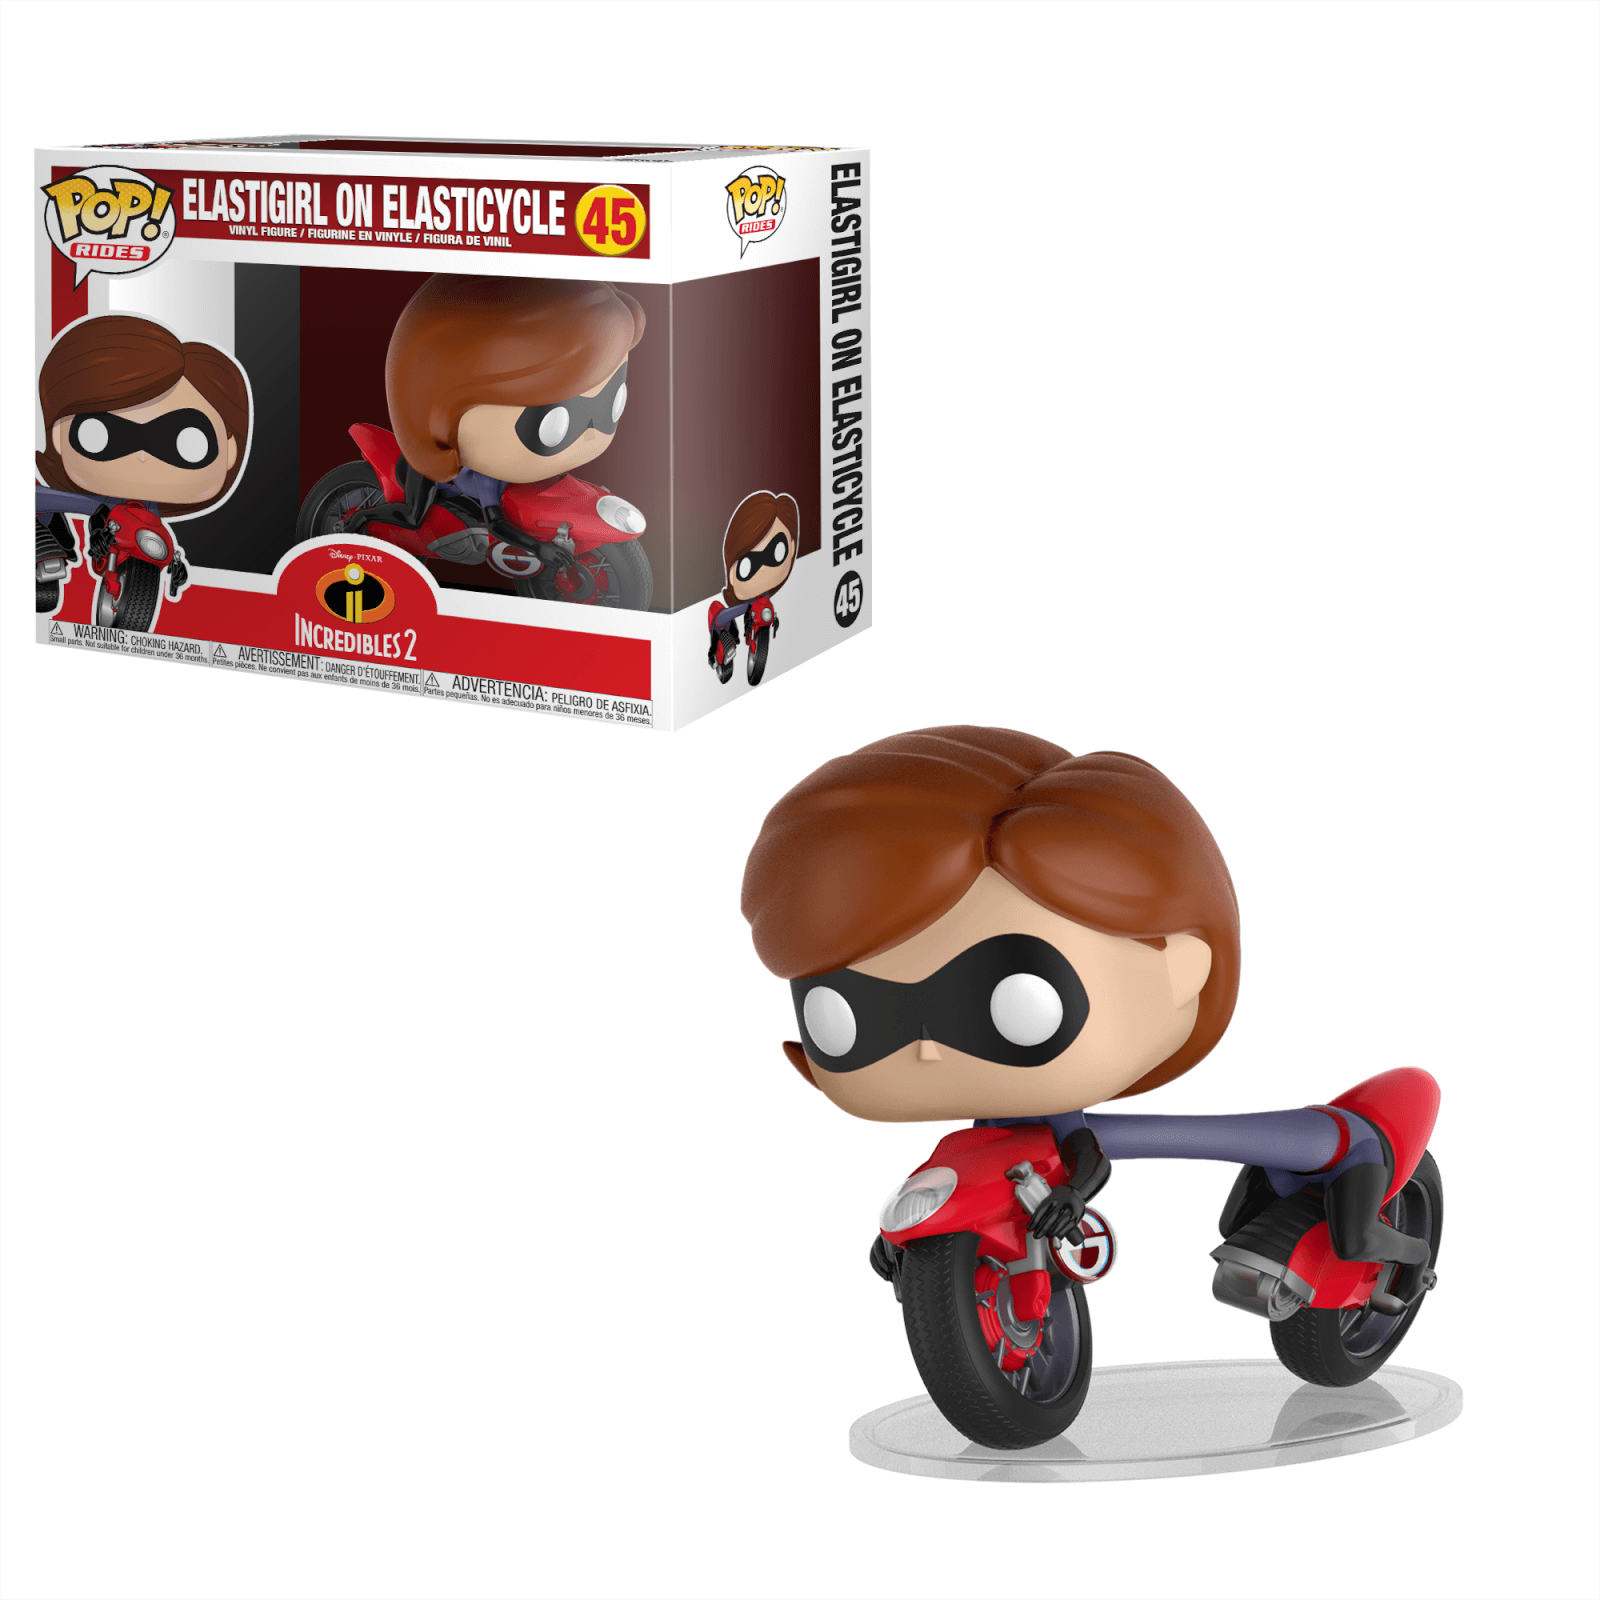 7a921cb734813 Figurine Pop! Elastigirl sur Moto Les Indestructibles Disney - Vinyl Ride |  Pop In A Box France